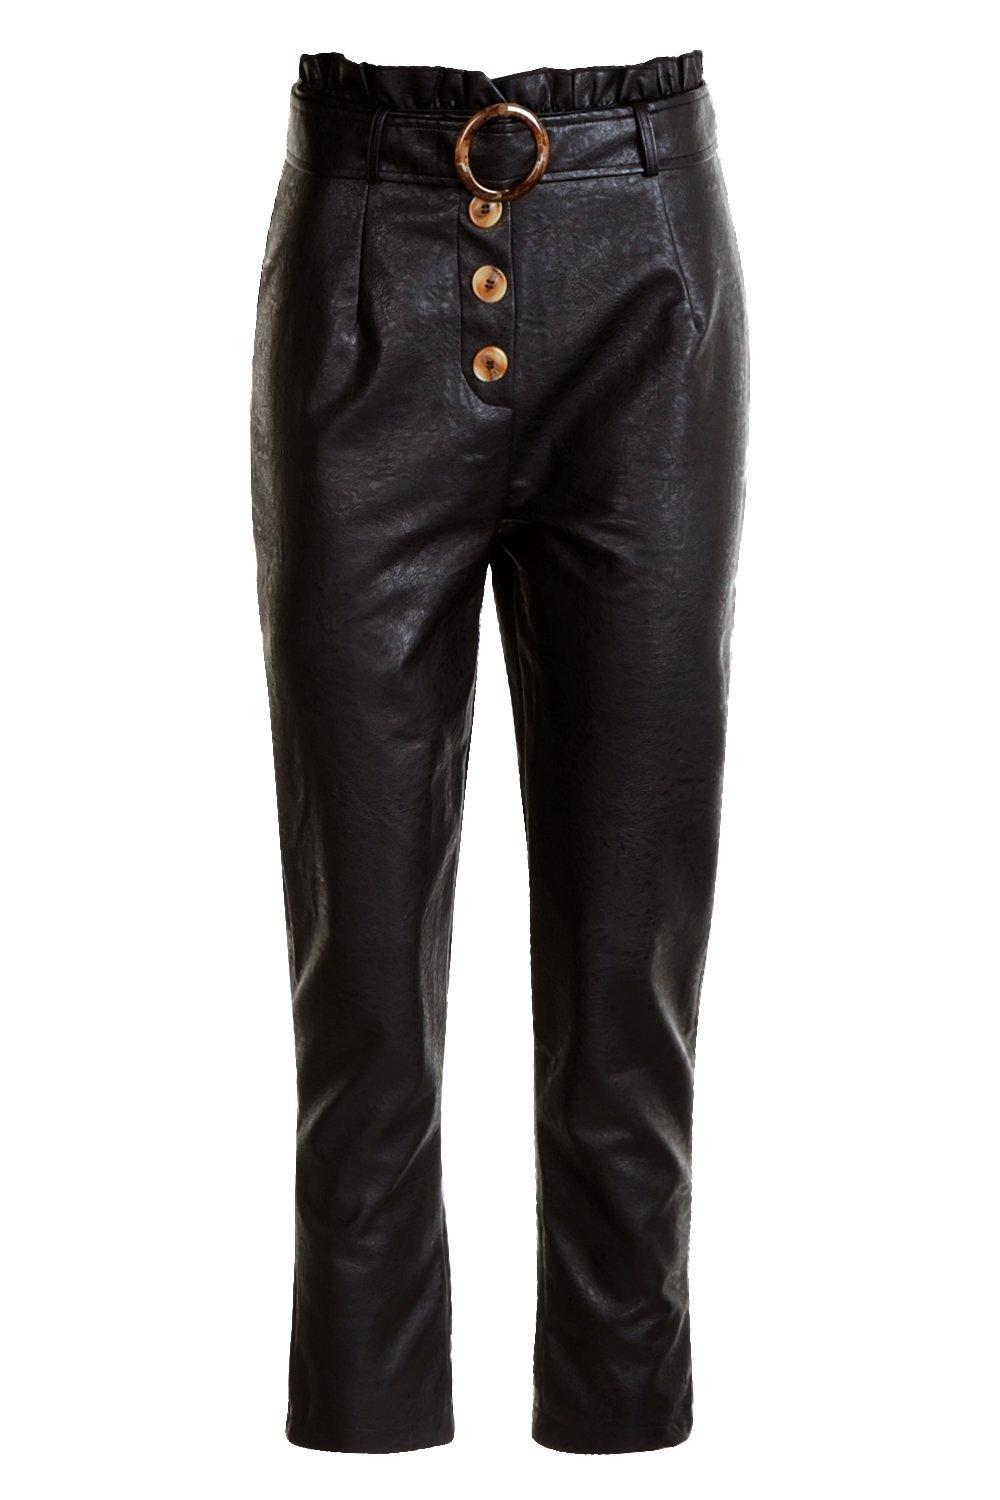 1dc7cccb8d50 Tap to visit site. Boohoo - Black Leather Look Mock Horn Button Paperbag  Belt Leather Pants - Lyst